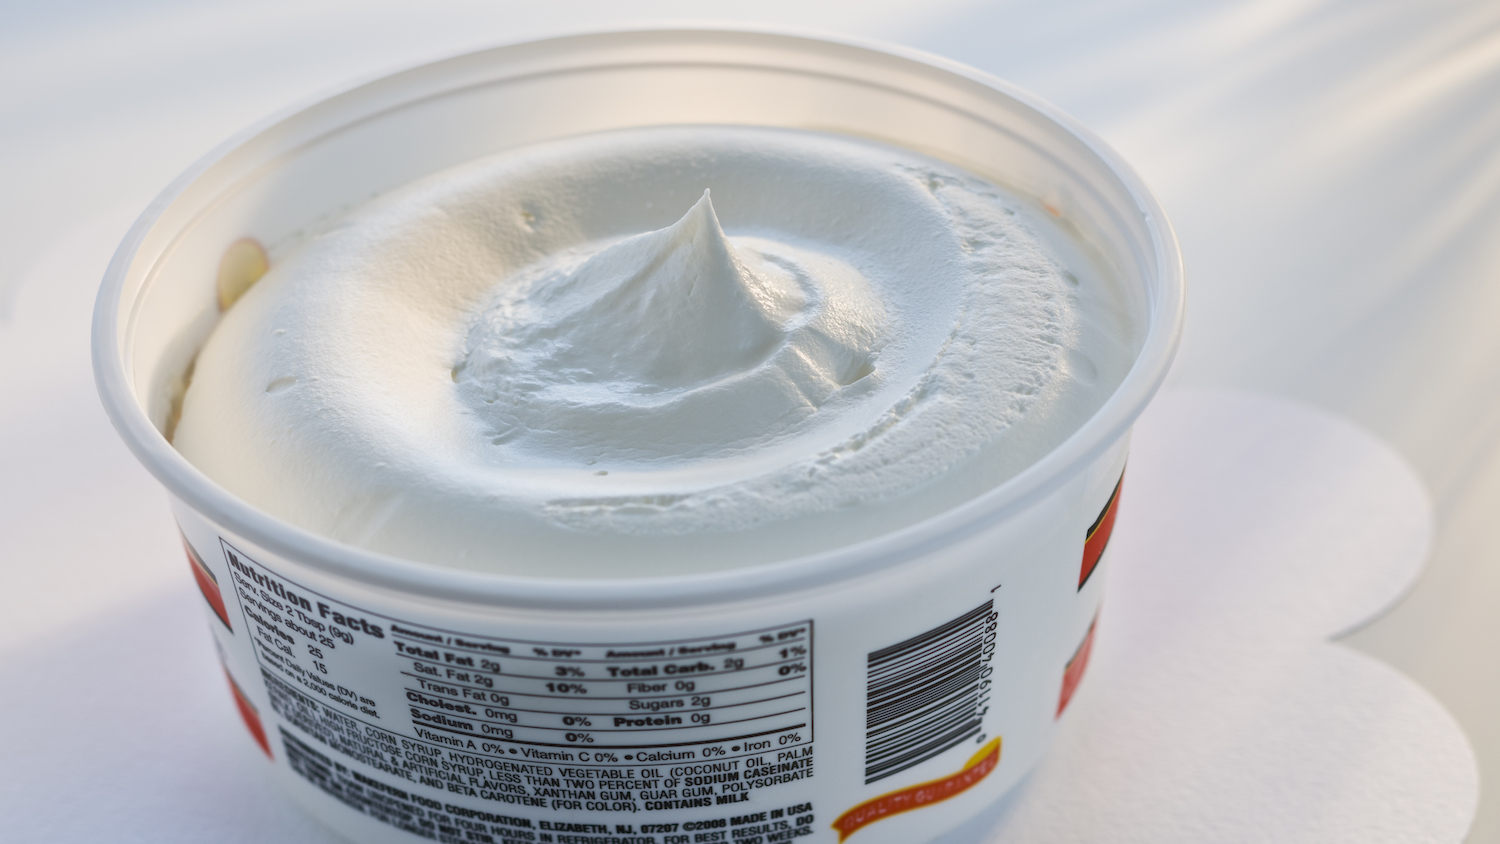 Cheesecake-Flavored Cool Whip Is a Real Thing You Can Buy